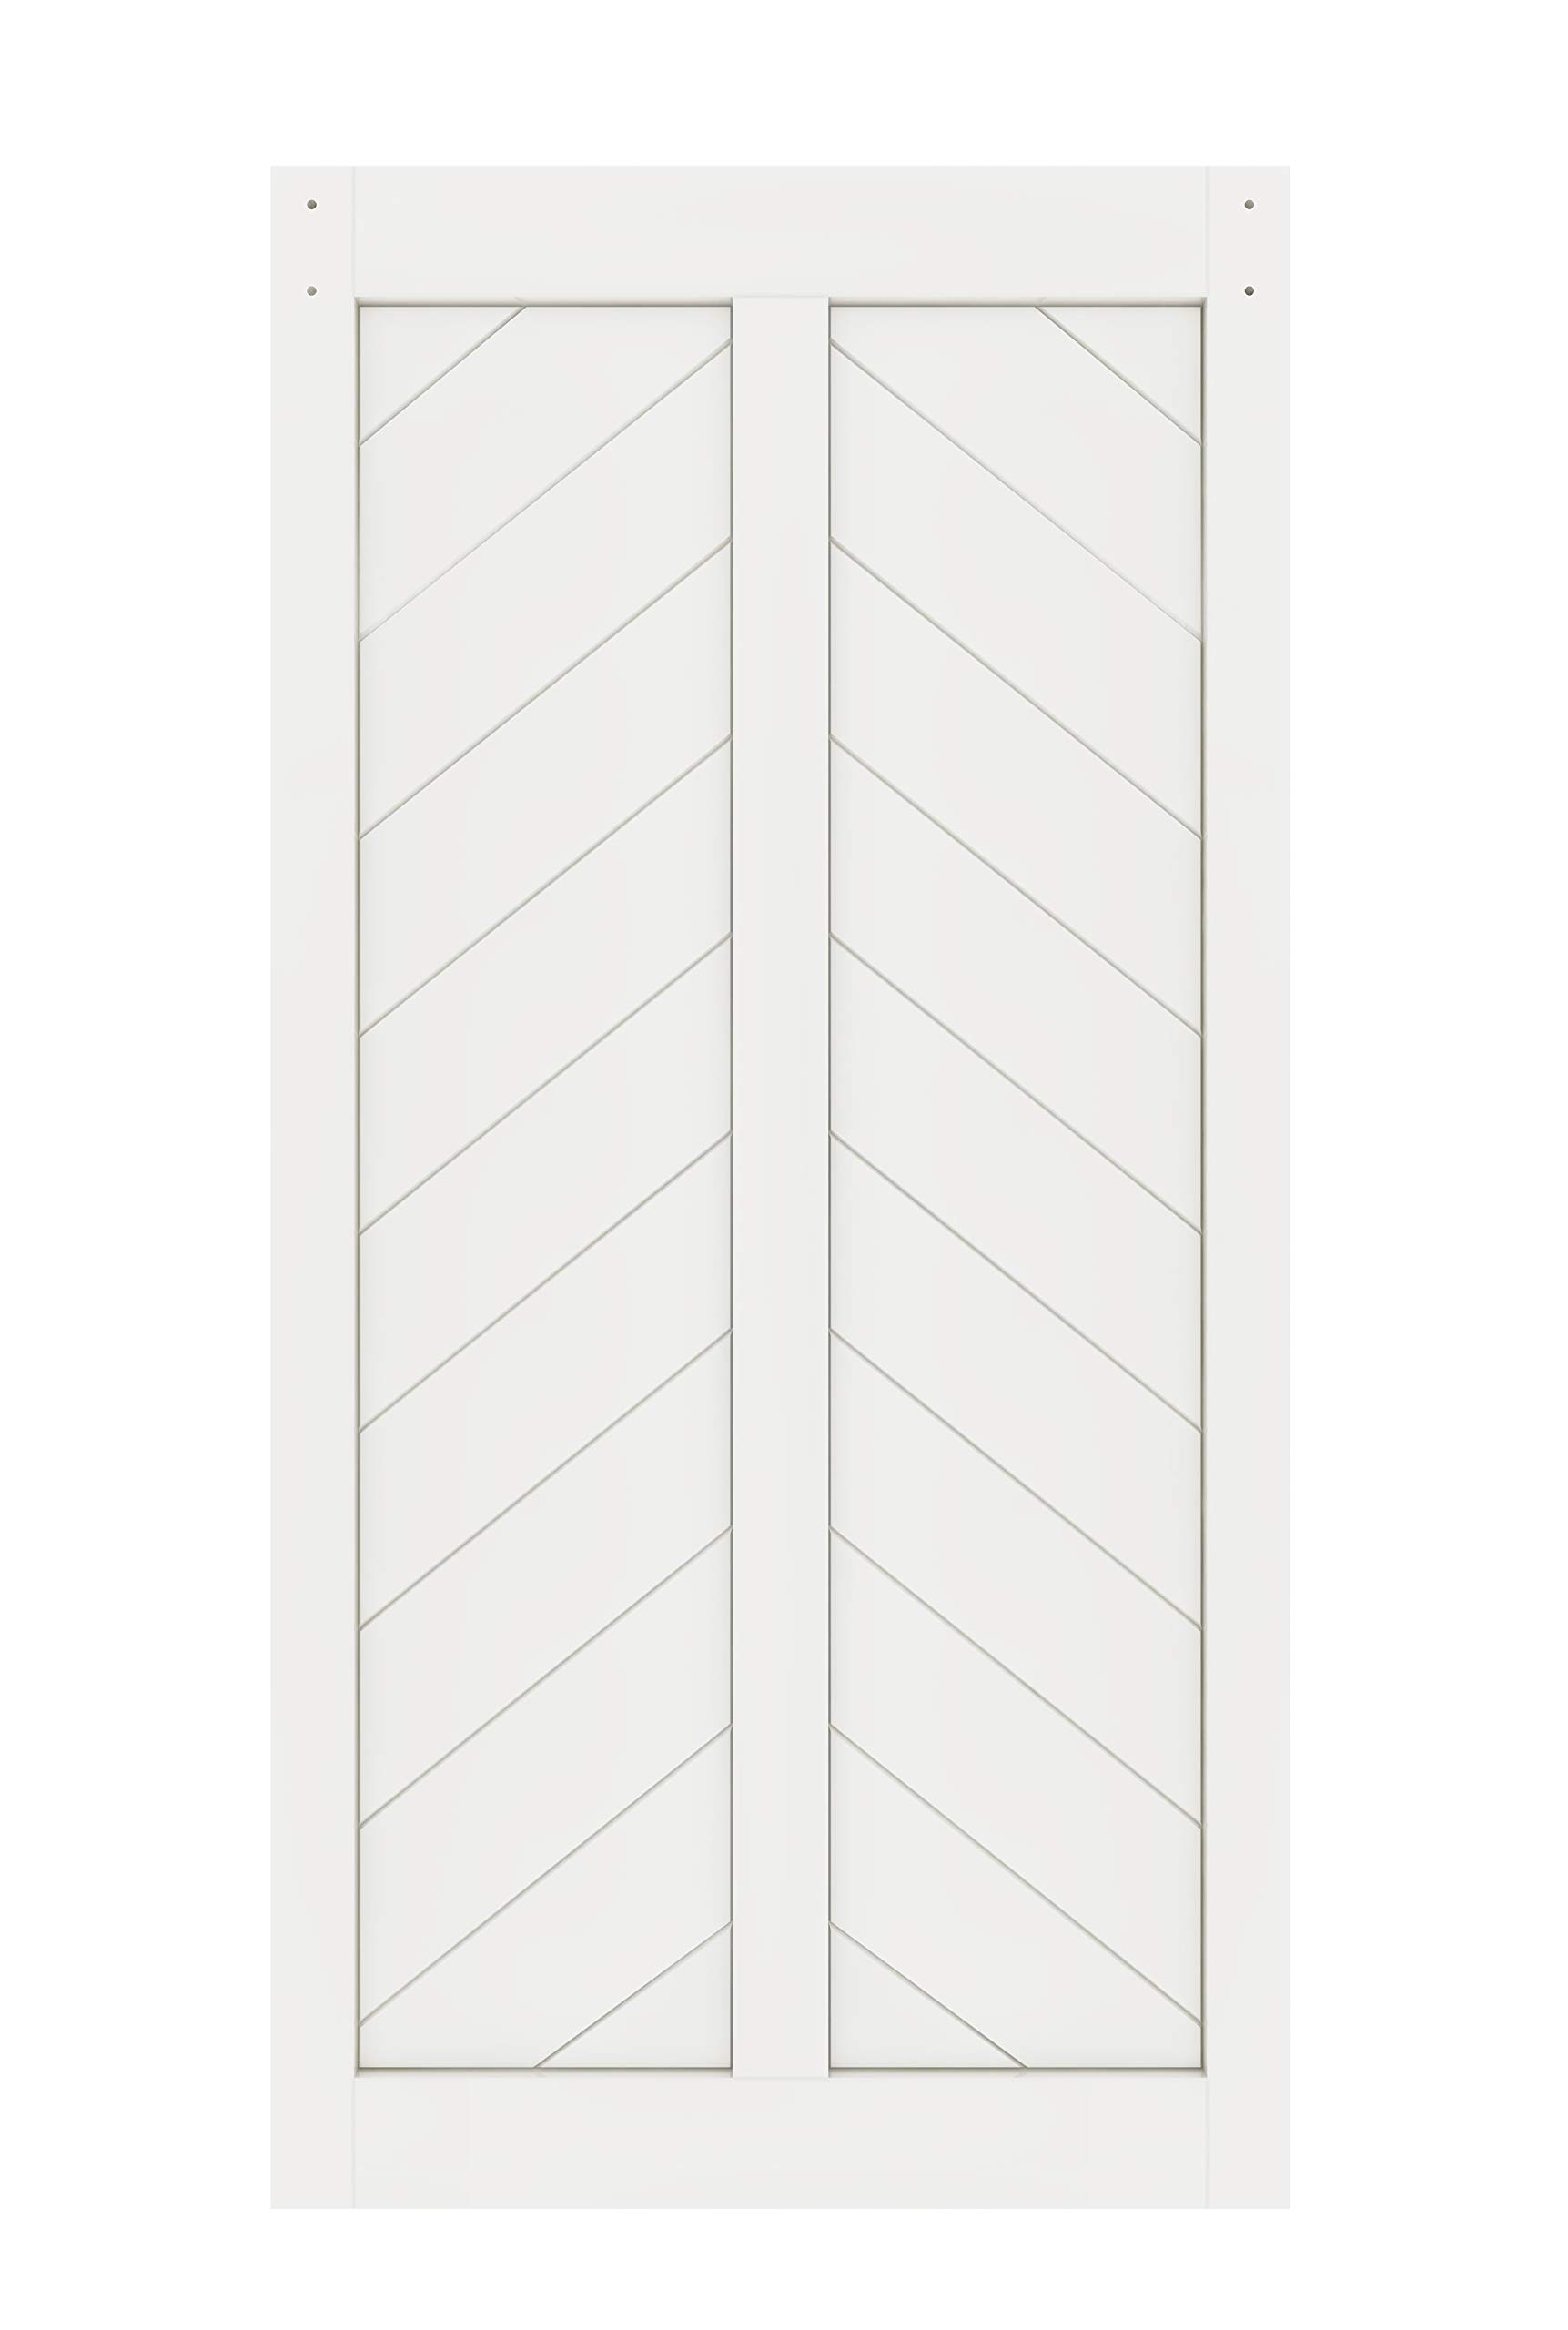 DIYHD 42X84in Fish Bone V Shape Sliding Barn Slab MDF Solid Core Primed Interior Door Panel(Disassembled), White-42X84'' White